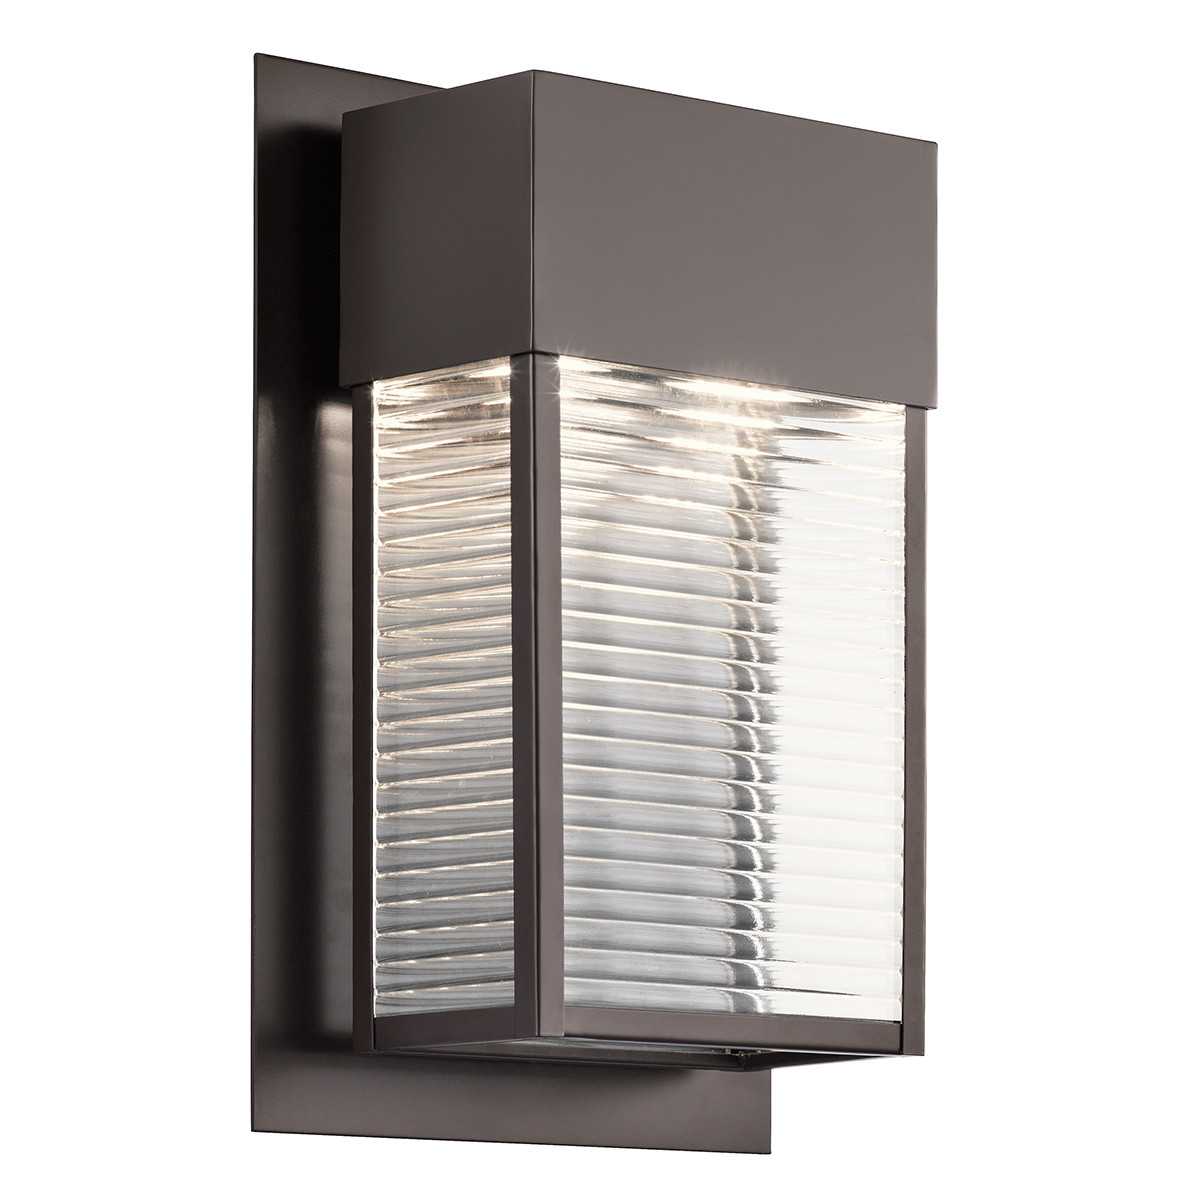 Details About Kichler 49190azled Sorel Led Outdoor Wall Sconce Architectural Bronze